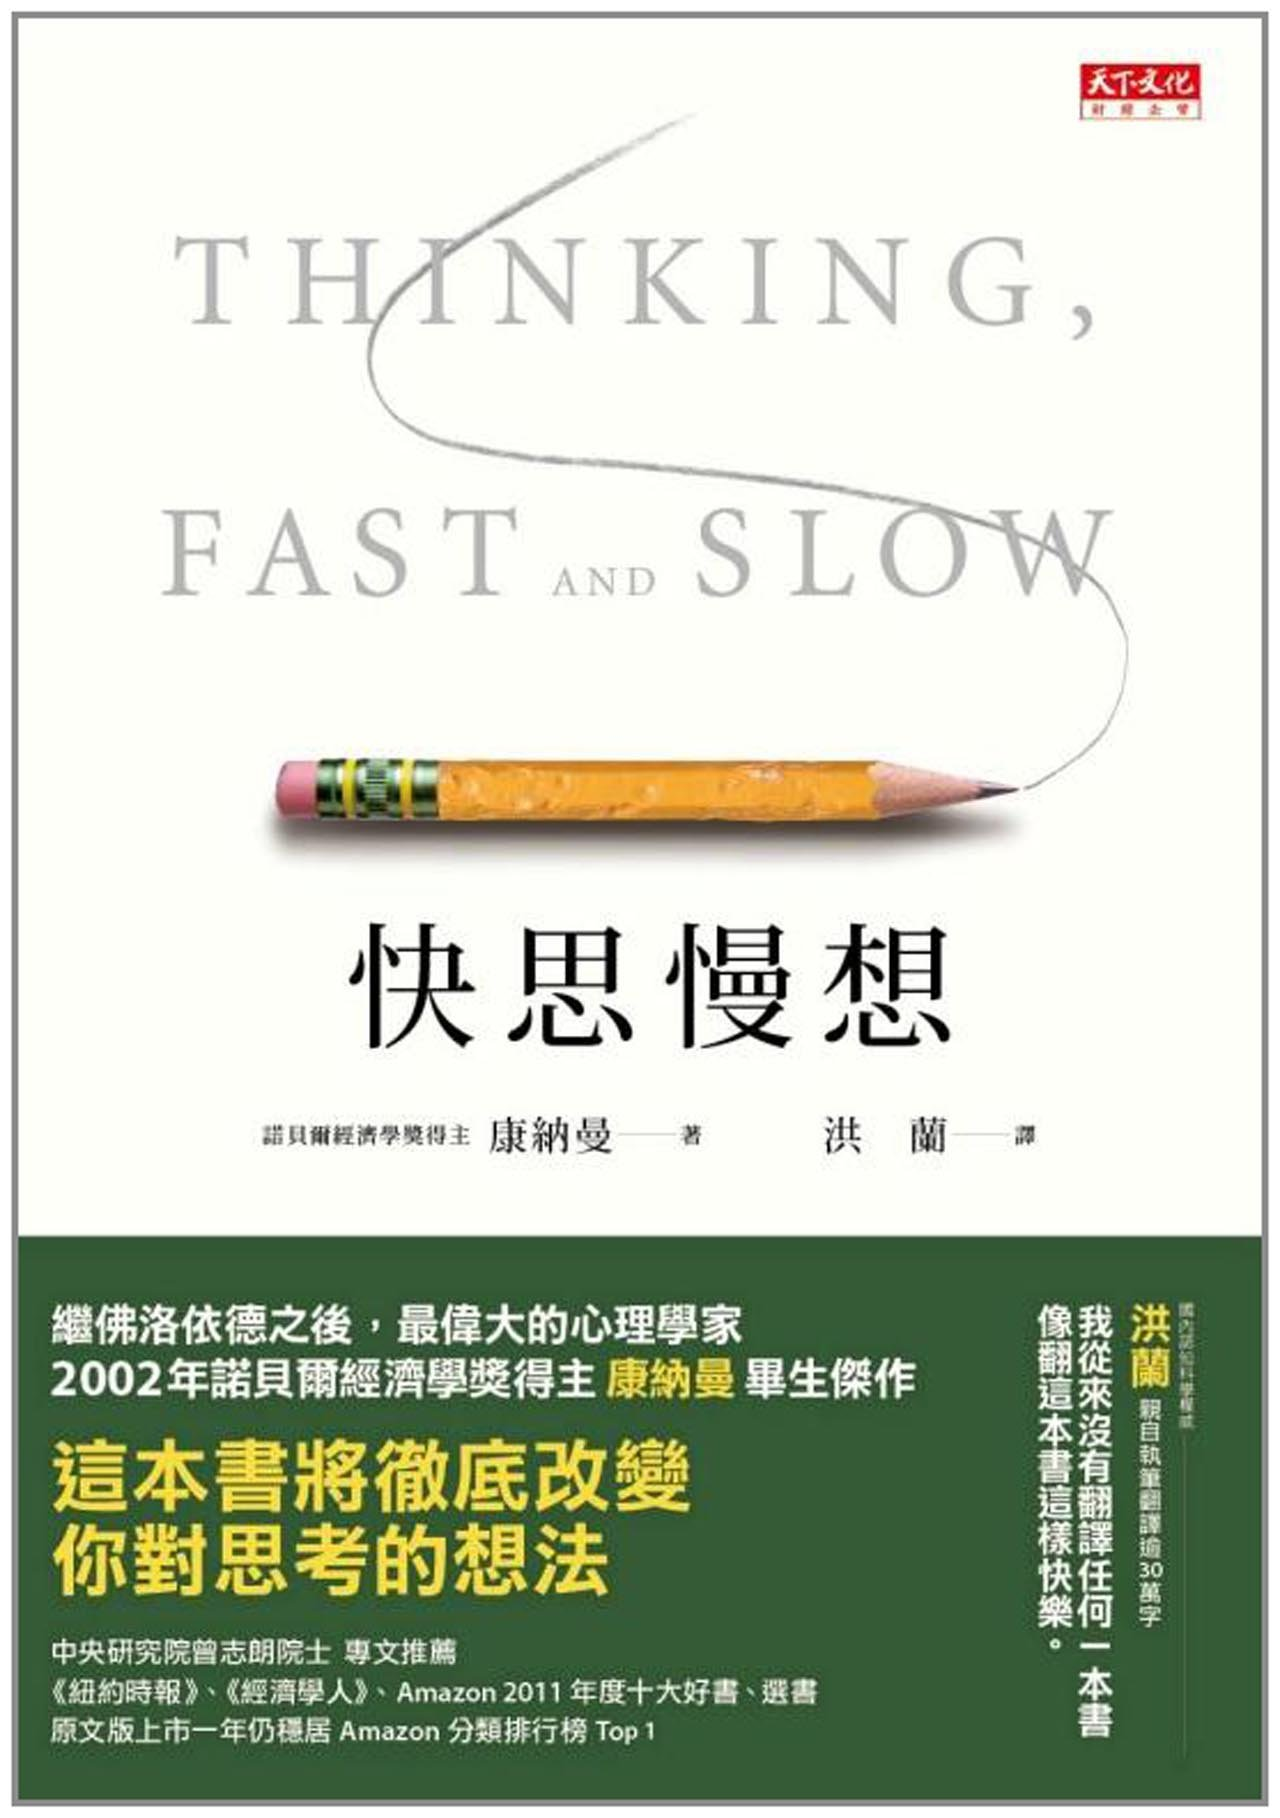 Thinking, Fast and Slow (Chinese and English Edition) (Taiwanese Chinese)  Hardcover – October 31, 2012